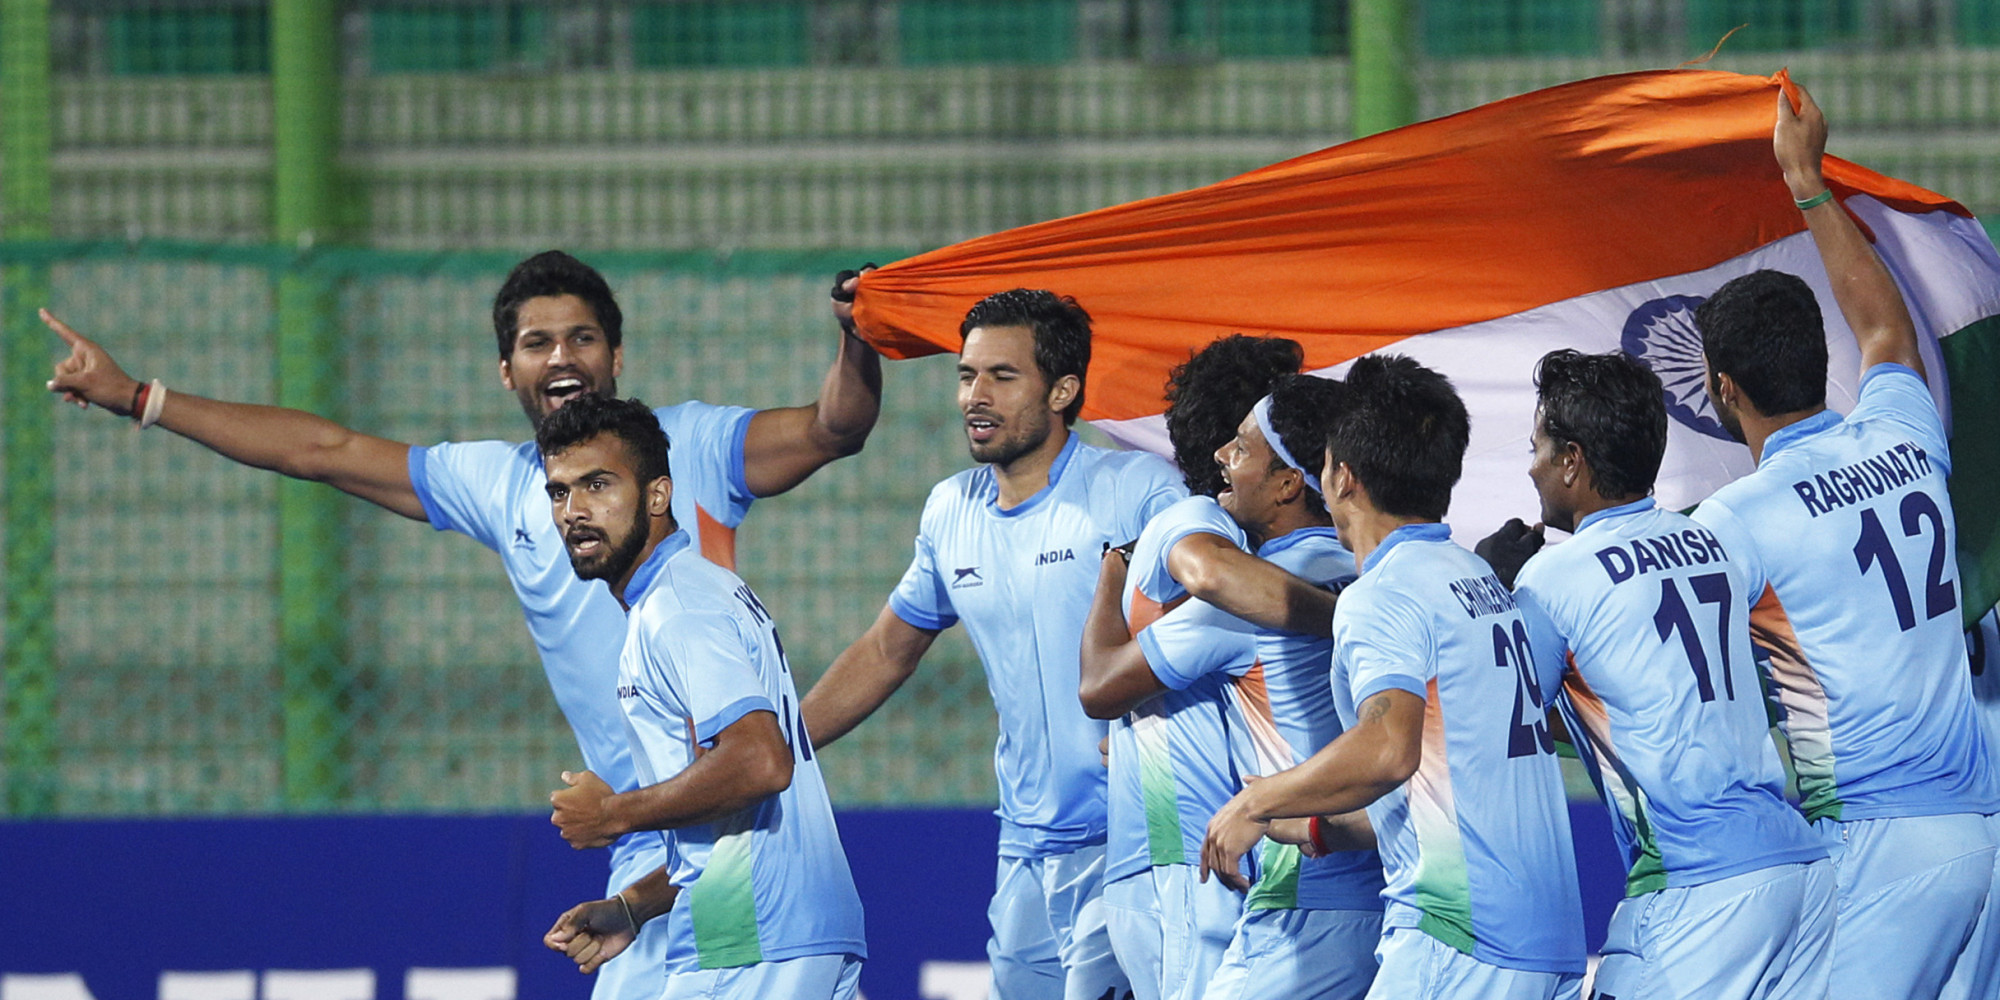 India will Face Germany in Champions Trophy on June 10